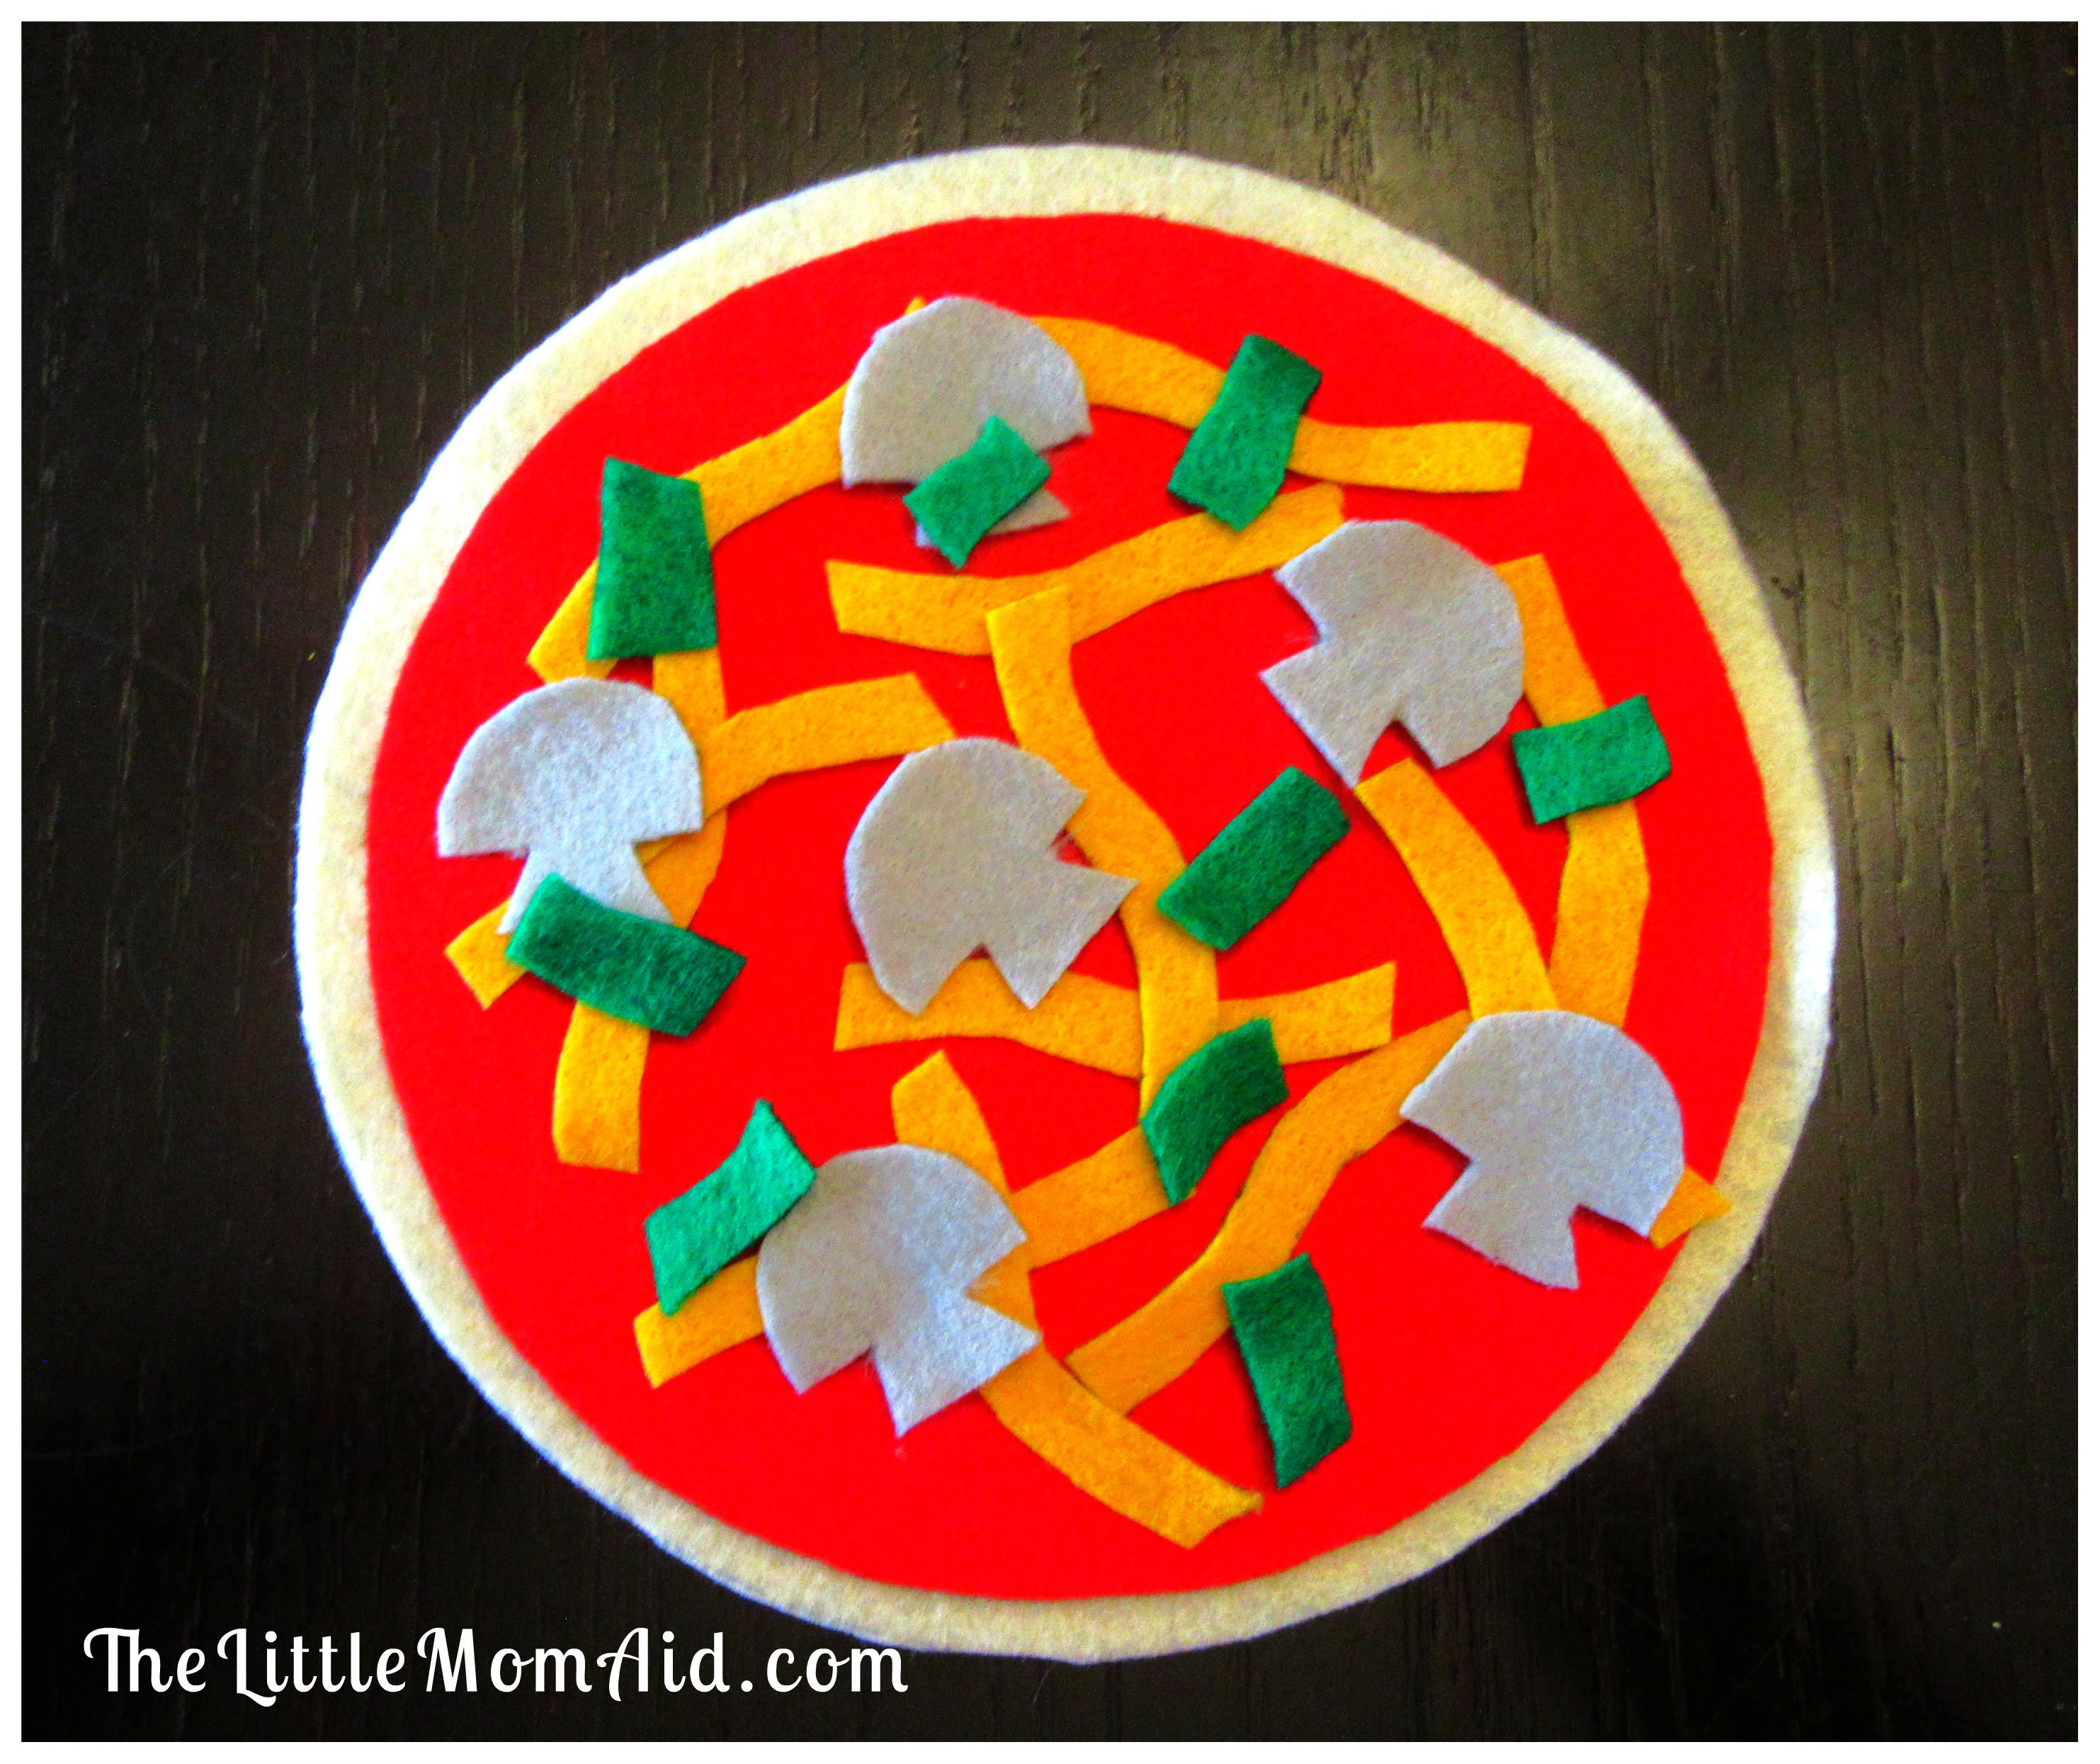 Make Your Own Felt Pizza Toddlers Diy Felt Pizza Toddlers